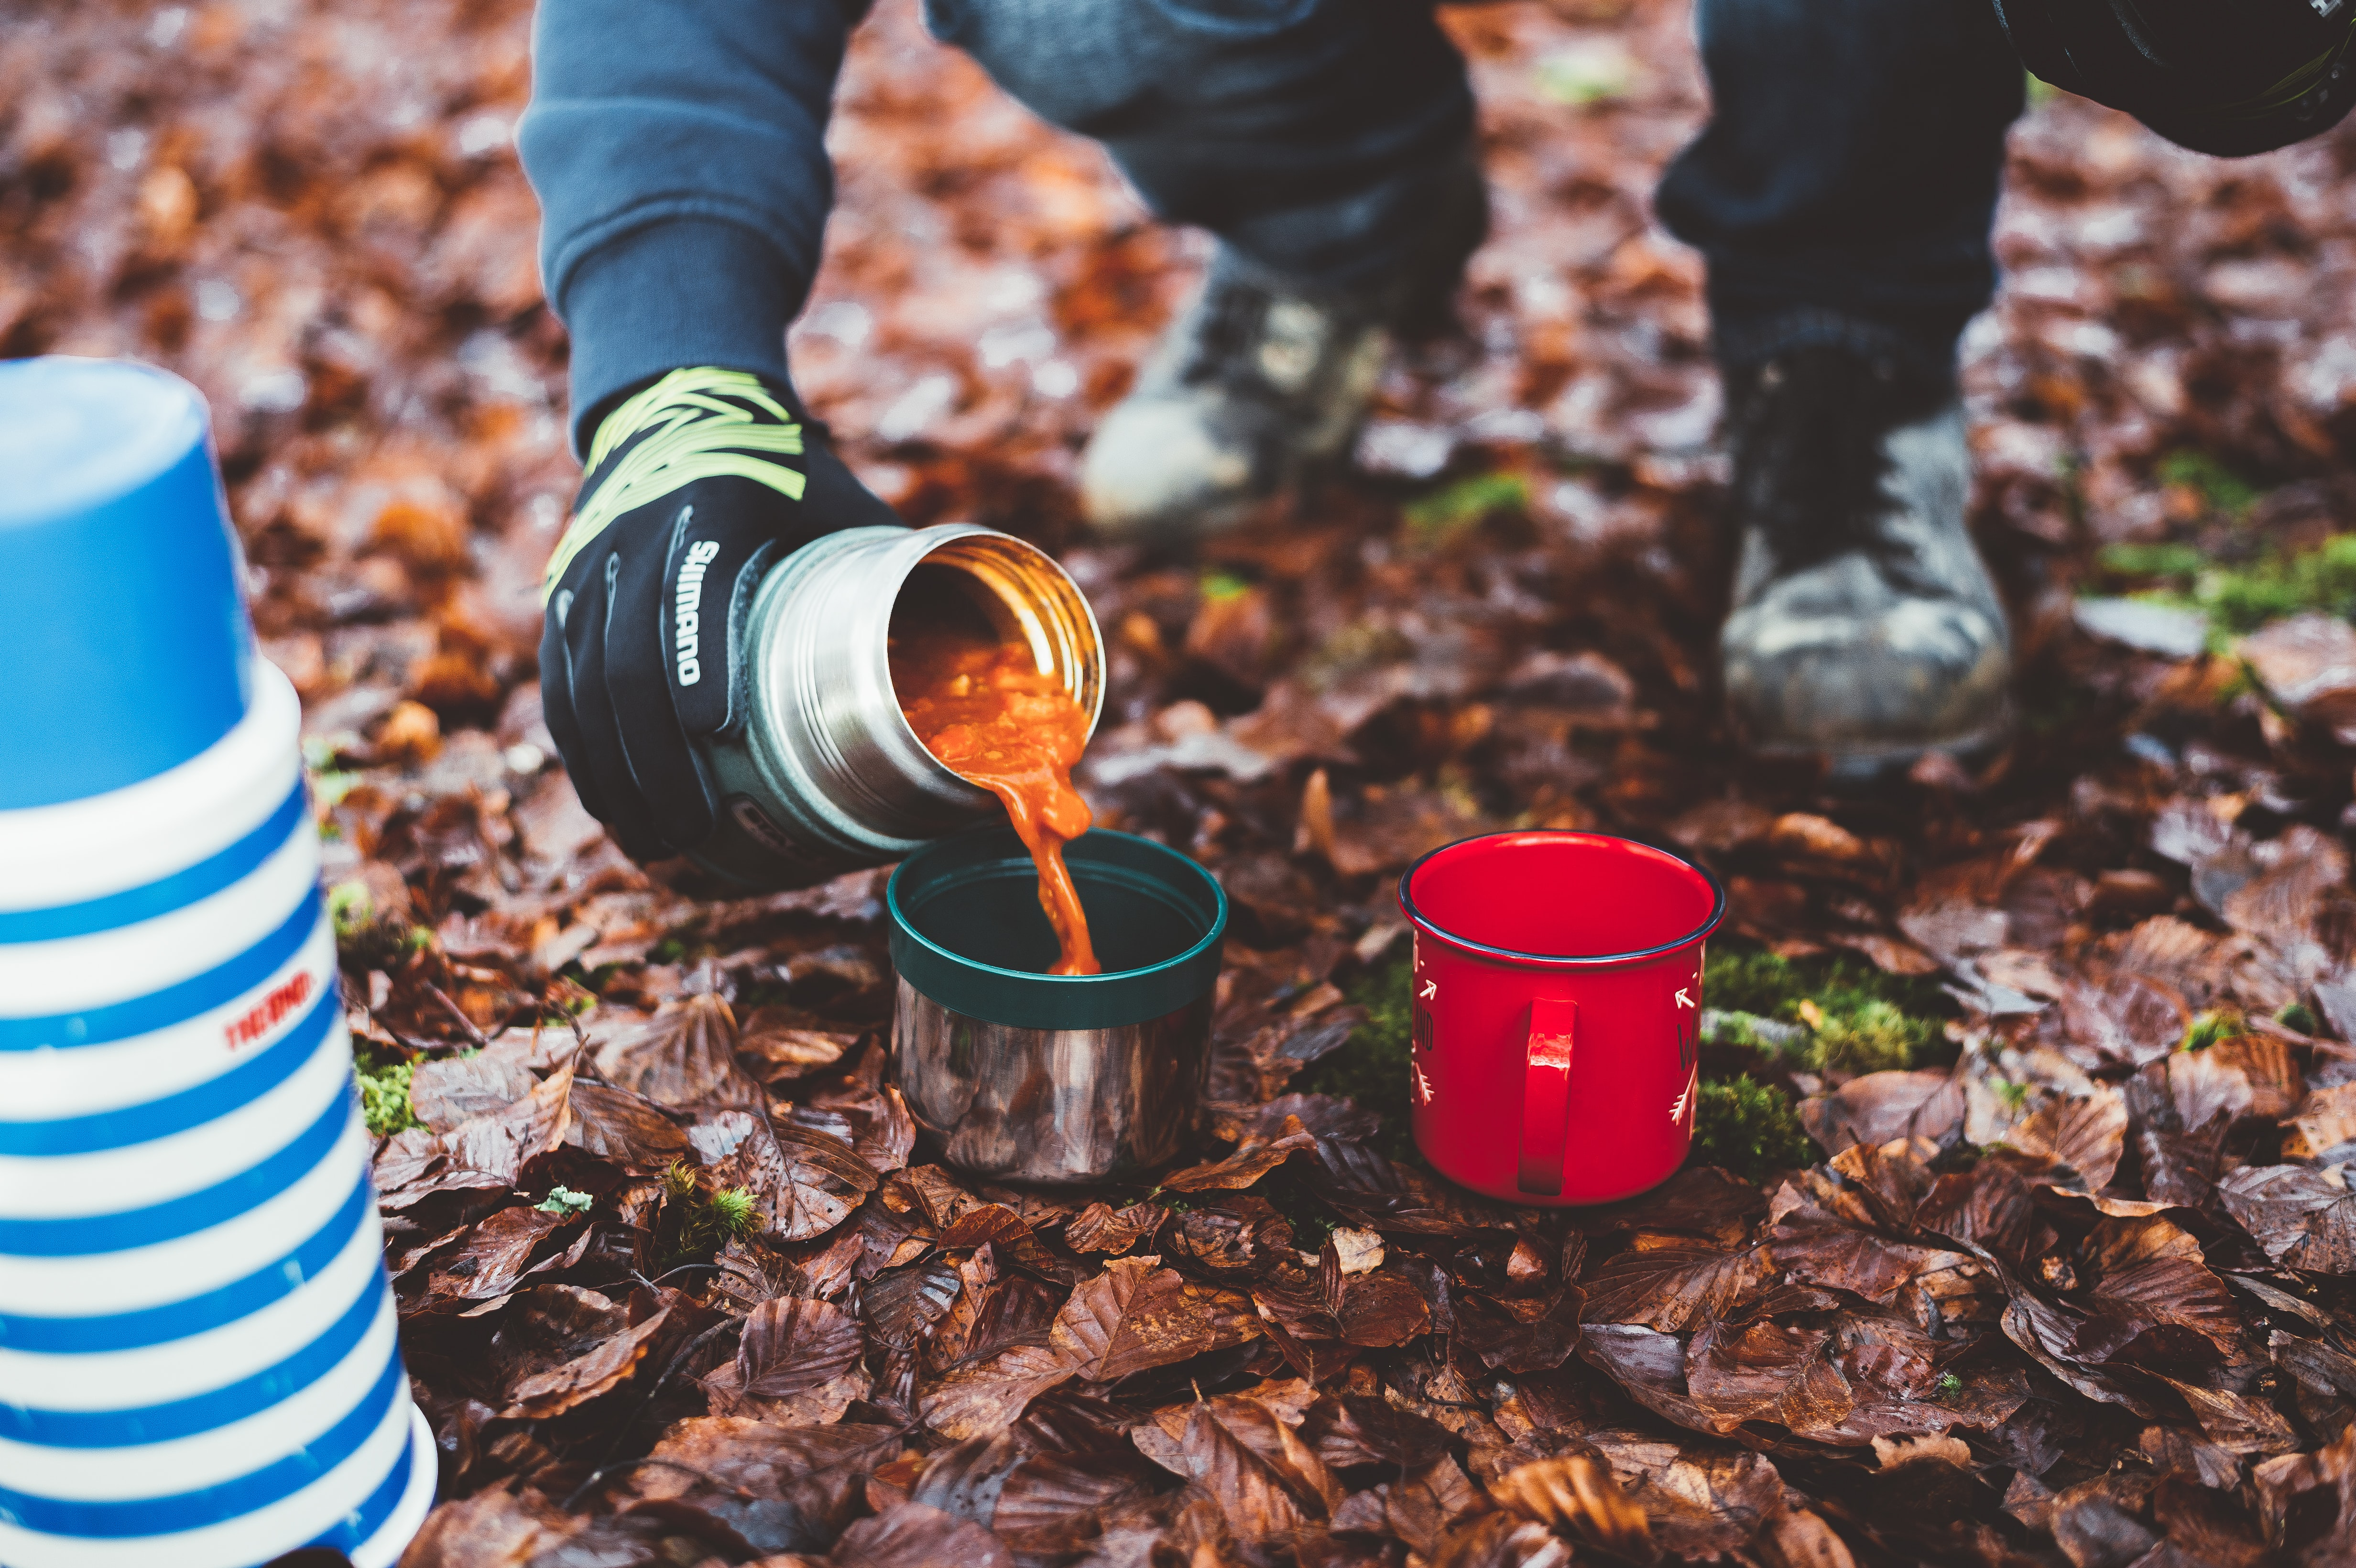 A person pouring soup from a thermos into a cup on the forest floor